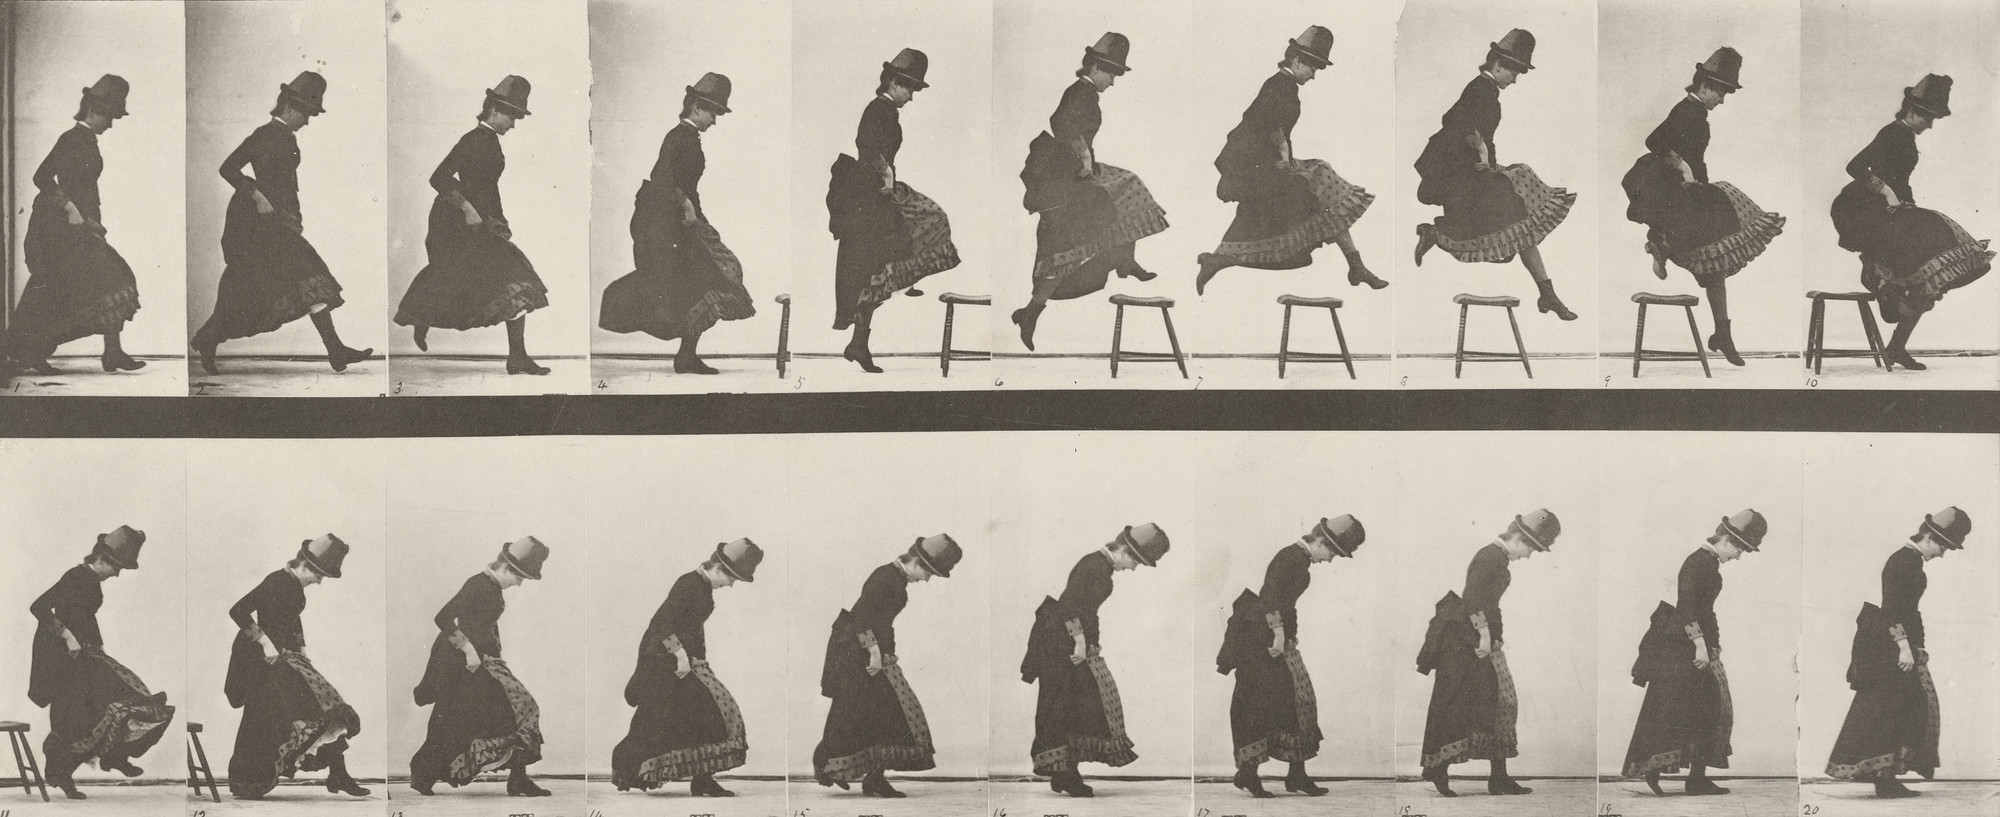 Eadweard J. Muybridge. Woman Jumping, Running Straight High Jump: Plate 156 from Animal Locomotion (1887). 1884-86